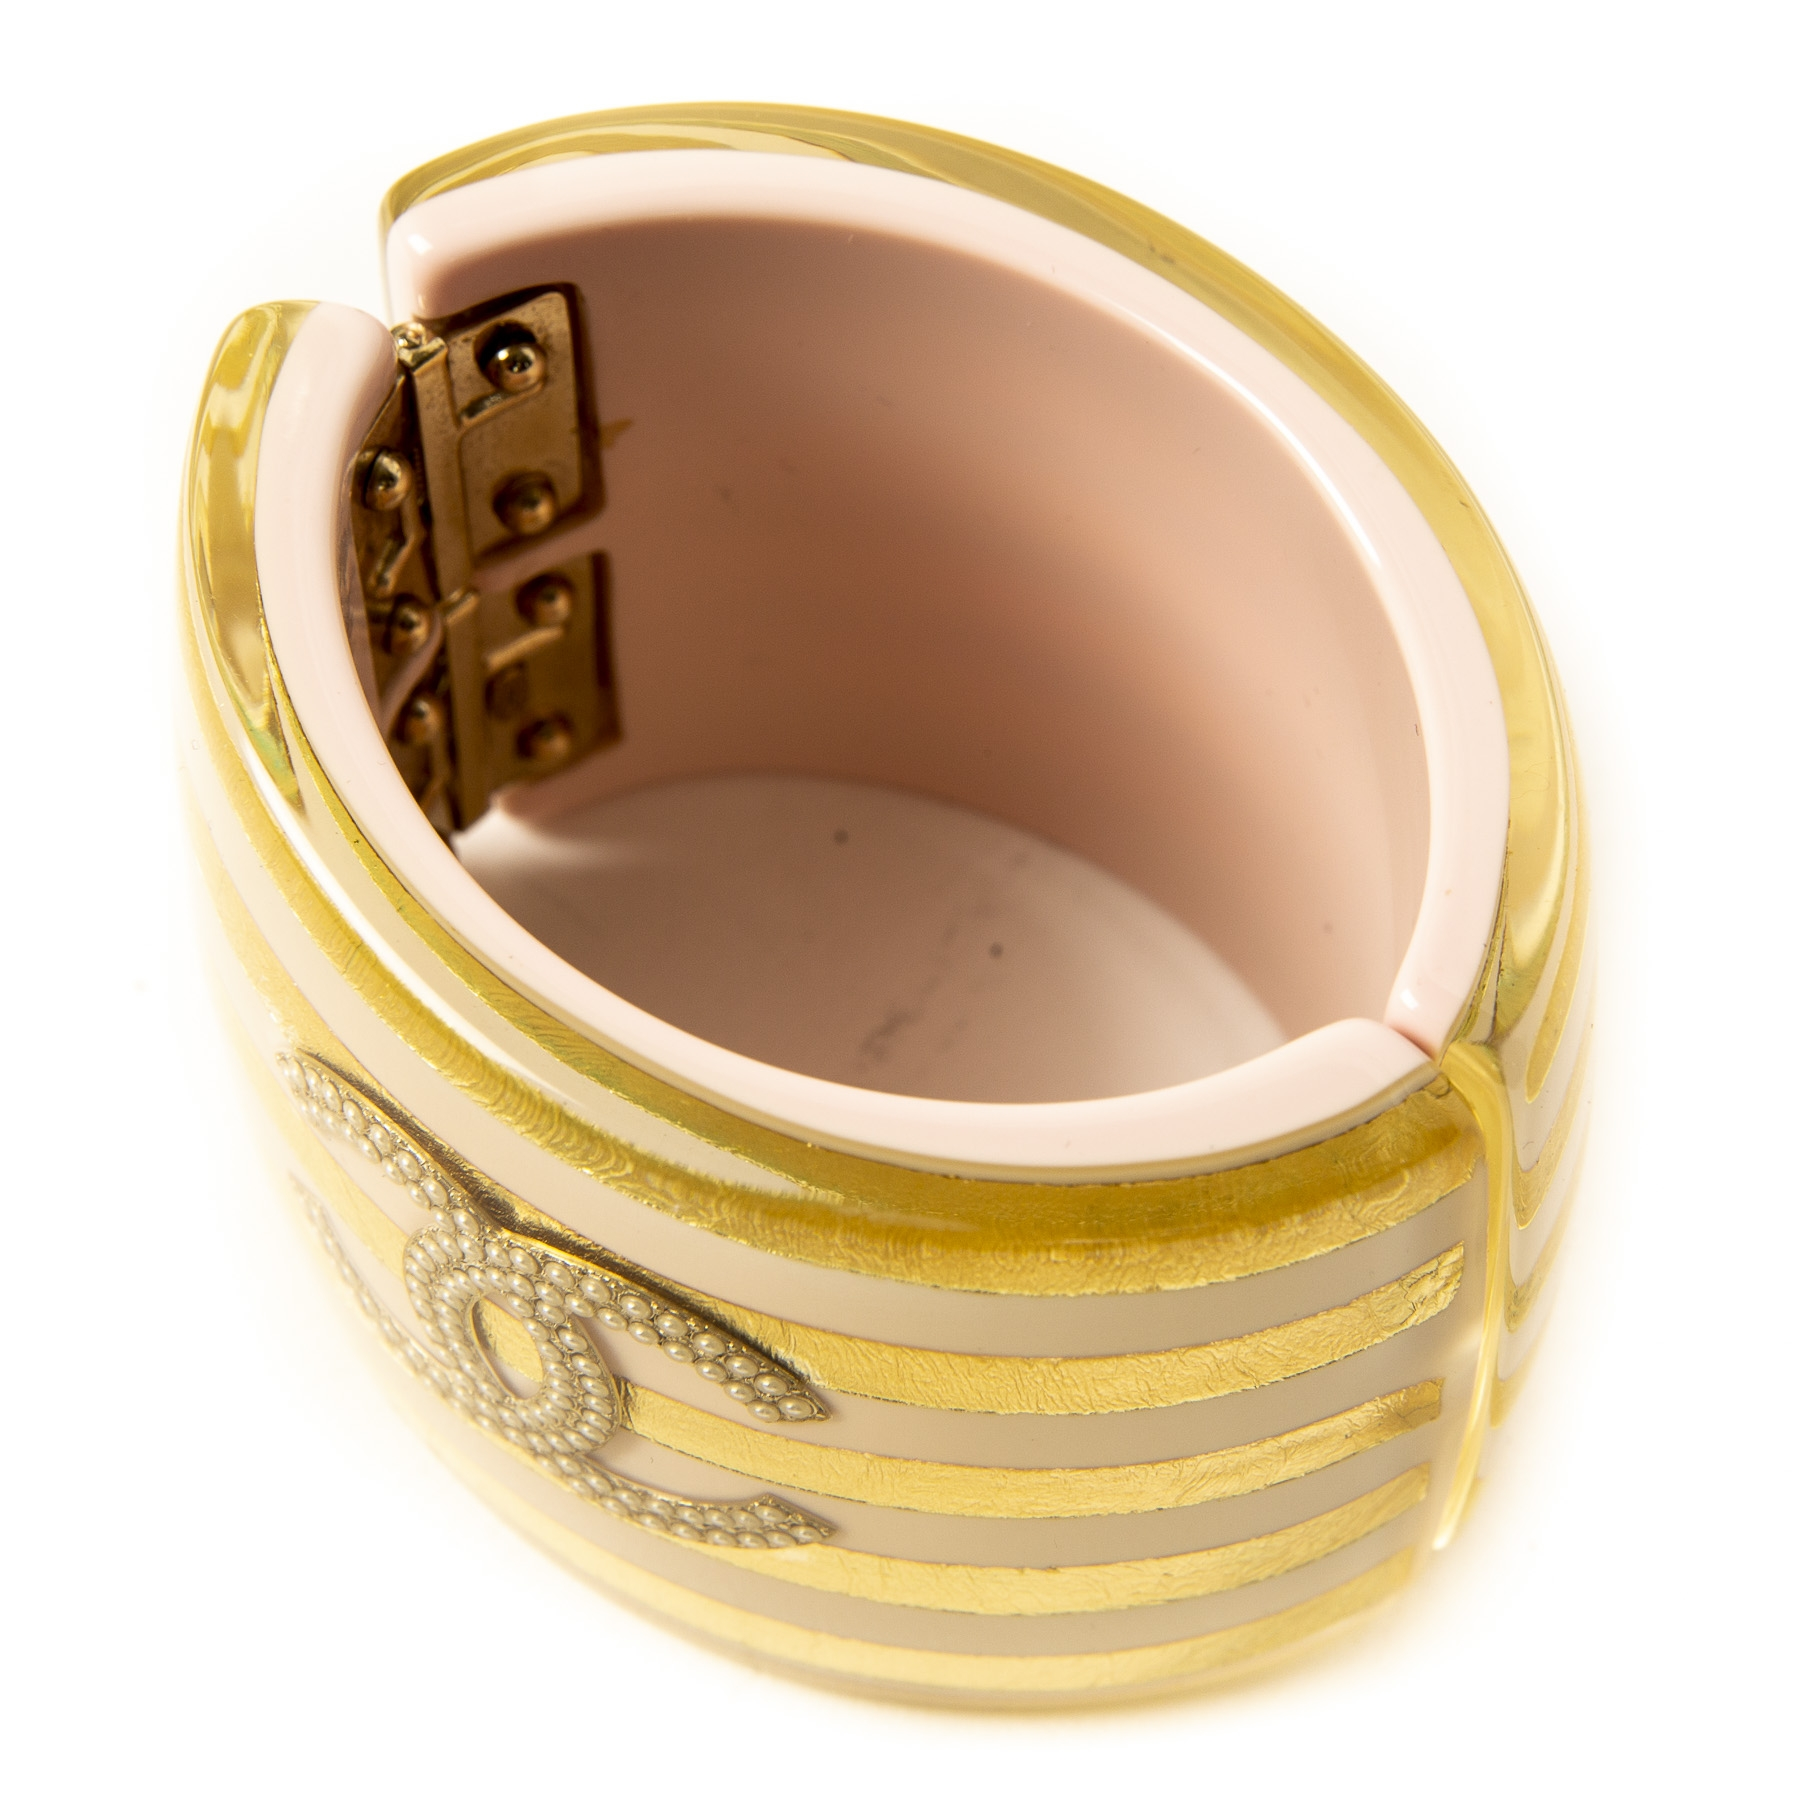 Authentieke Tweedehands Chanel Gold Pink Striped Resin Cuff Bracelet Pearl CC Logo juiste prijs veilig online shoppen luxe merken webshop winkelen Antwerpen België mode fashion